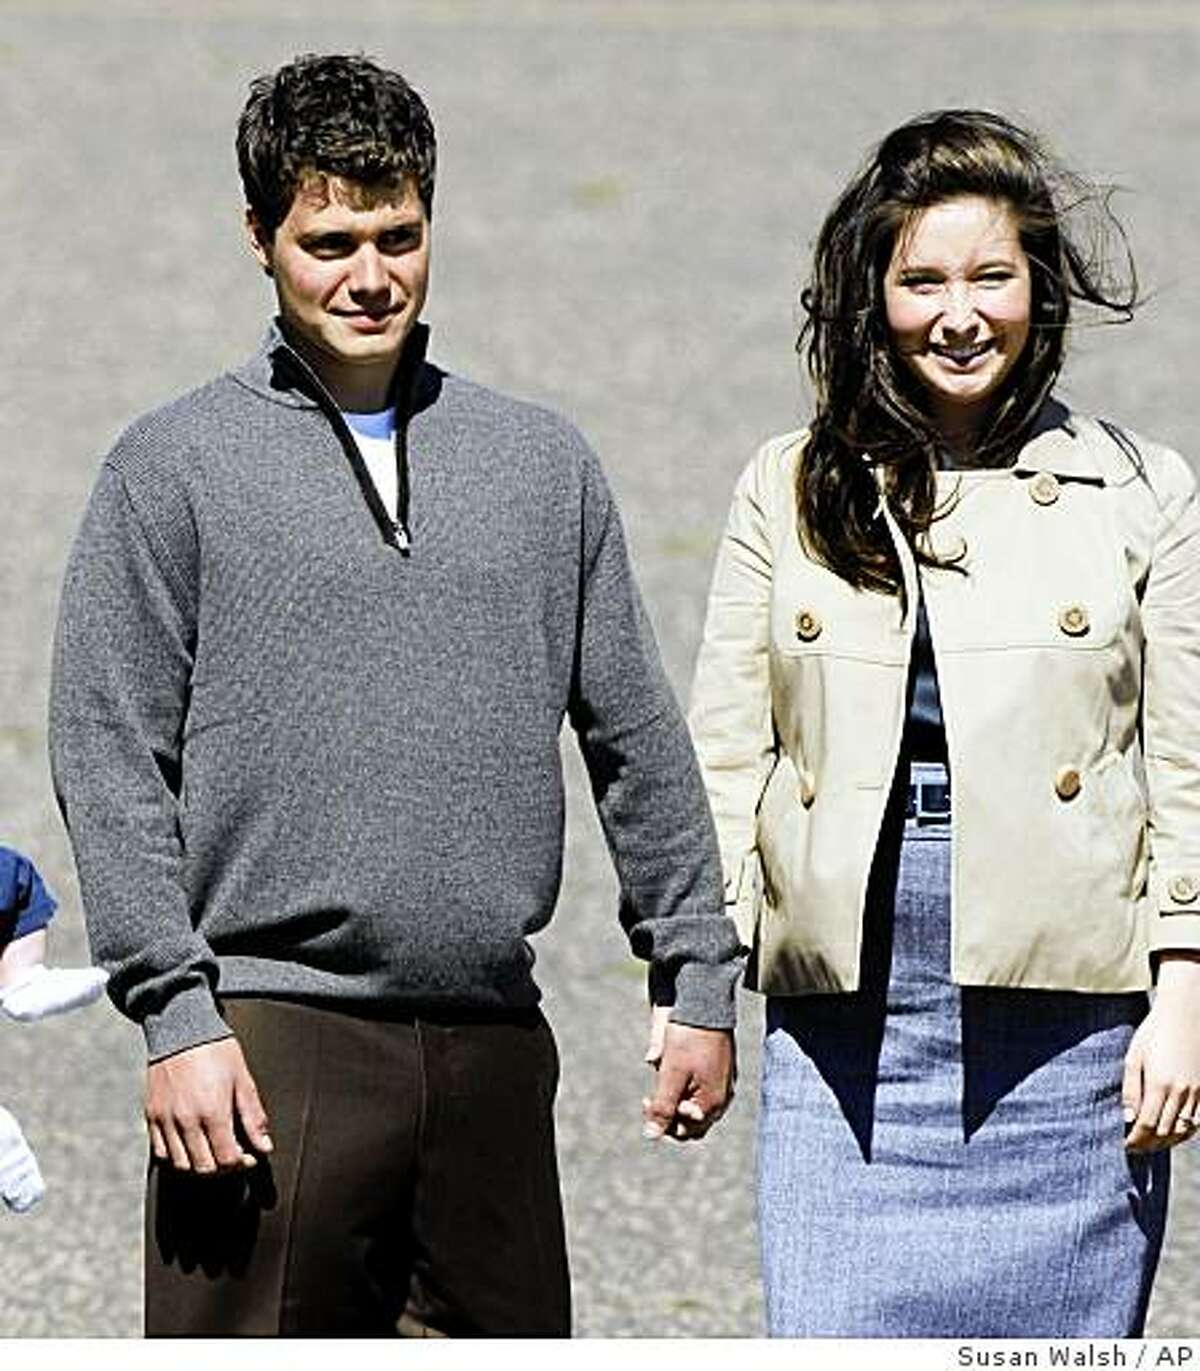 Bristol Palin, daughter of Republican vice presidential candidate Sarah Palin, walks with her boyfriend, Levi Johnston, as they await the arrival of Republican presidential candidate John McCain in Minneapolis for the Republican National Convention in St. Paul, Minn., Wednesday, Sept. 3, 2008. (AP Photo/Susan Walsh)